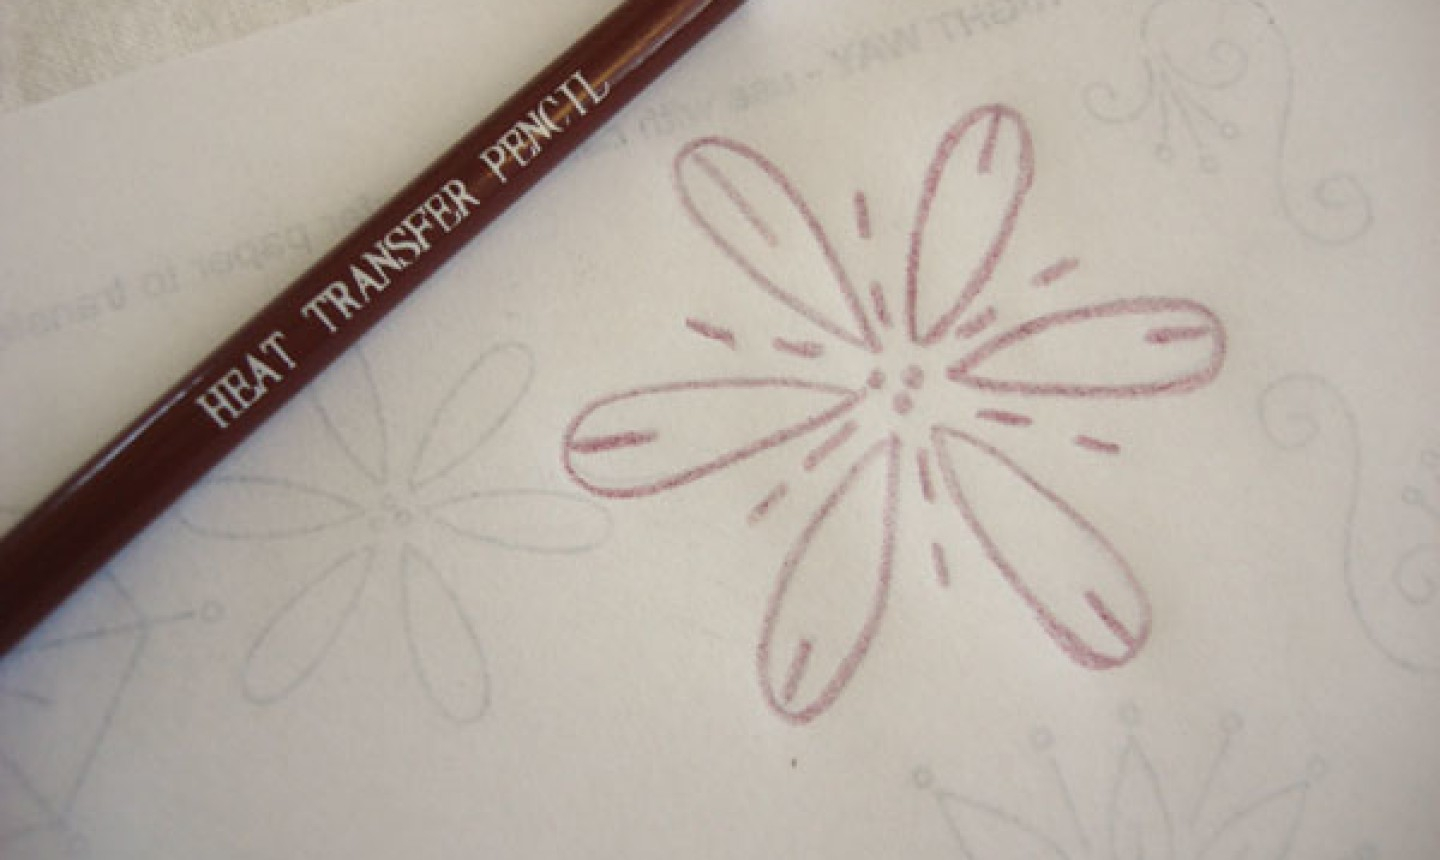 How To Make Embroidery Patterns 5 Simple Ways To Transfer Embroidery Designs